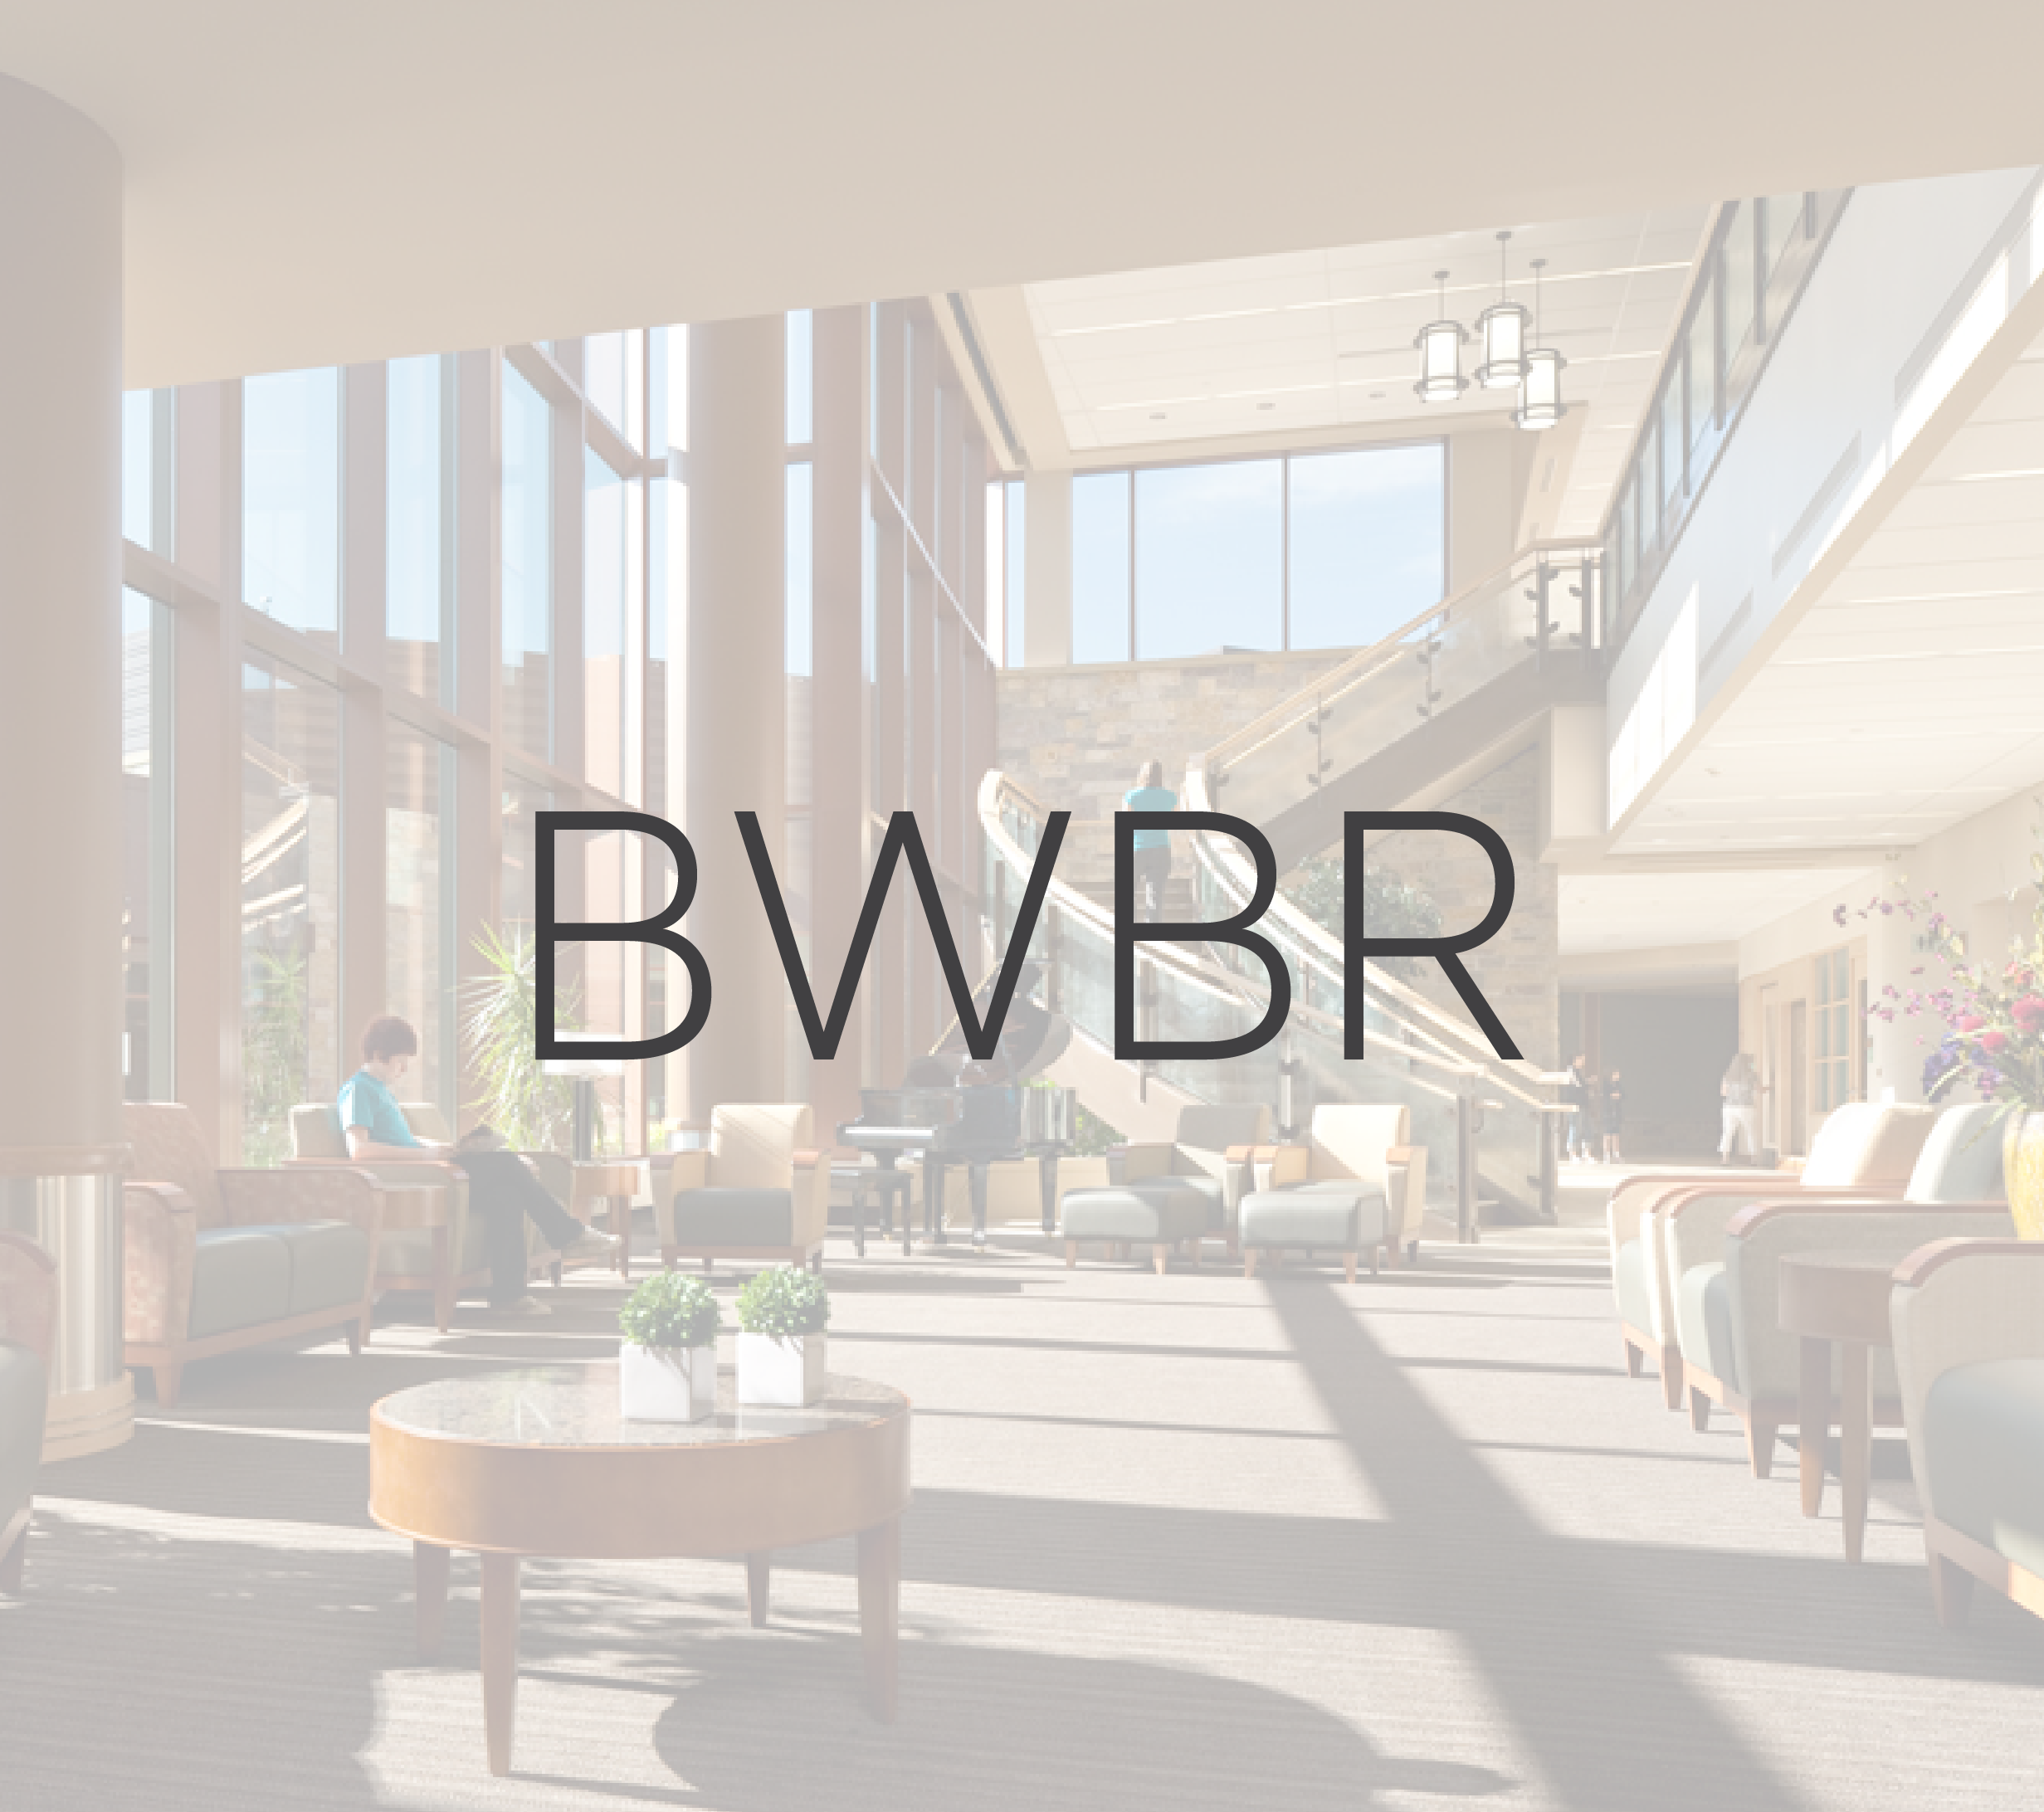 BWBR Architects